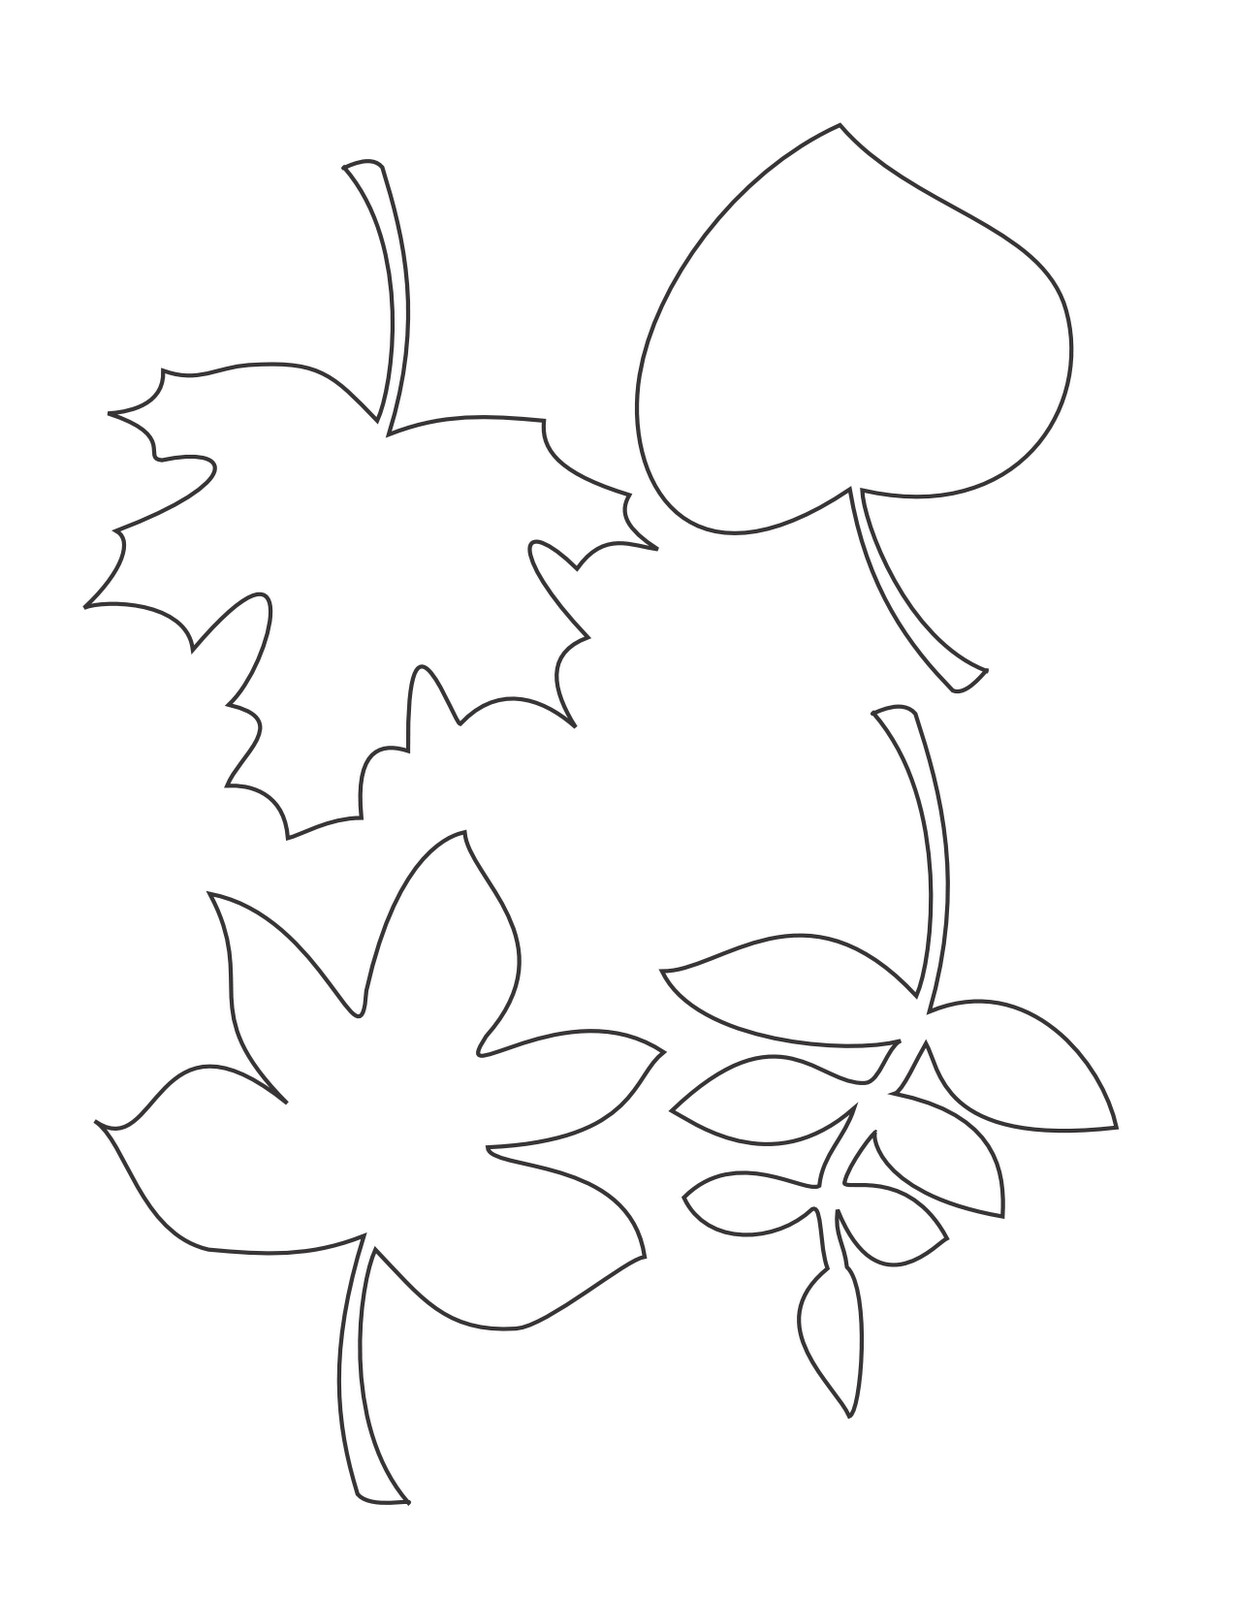 Fall Leaves Coloring Sheet  Fall Leaves Coloring Pages coloringsuite